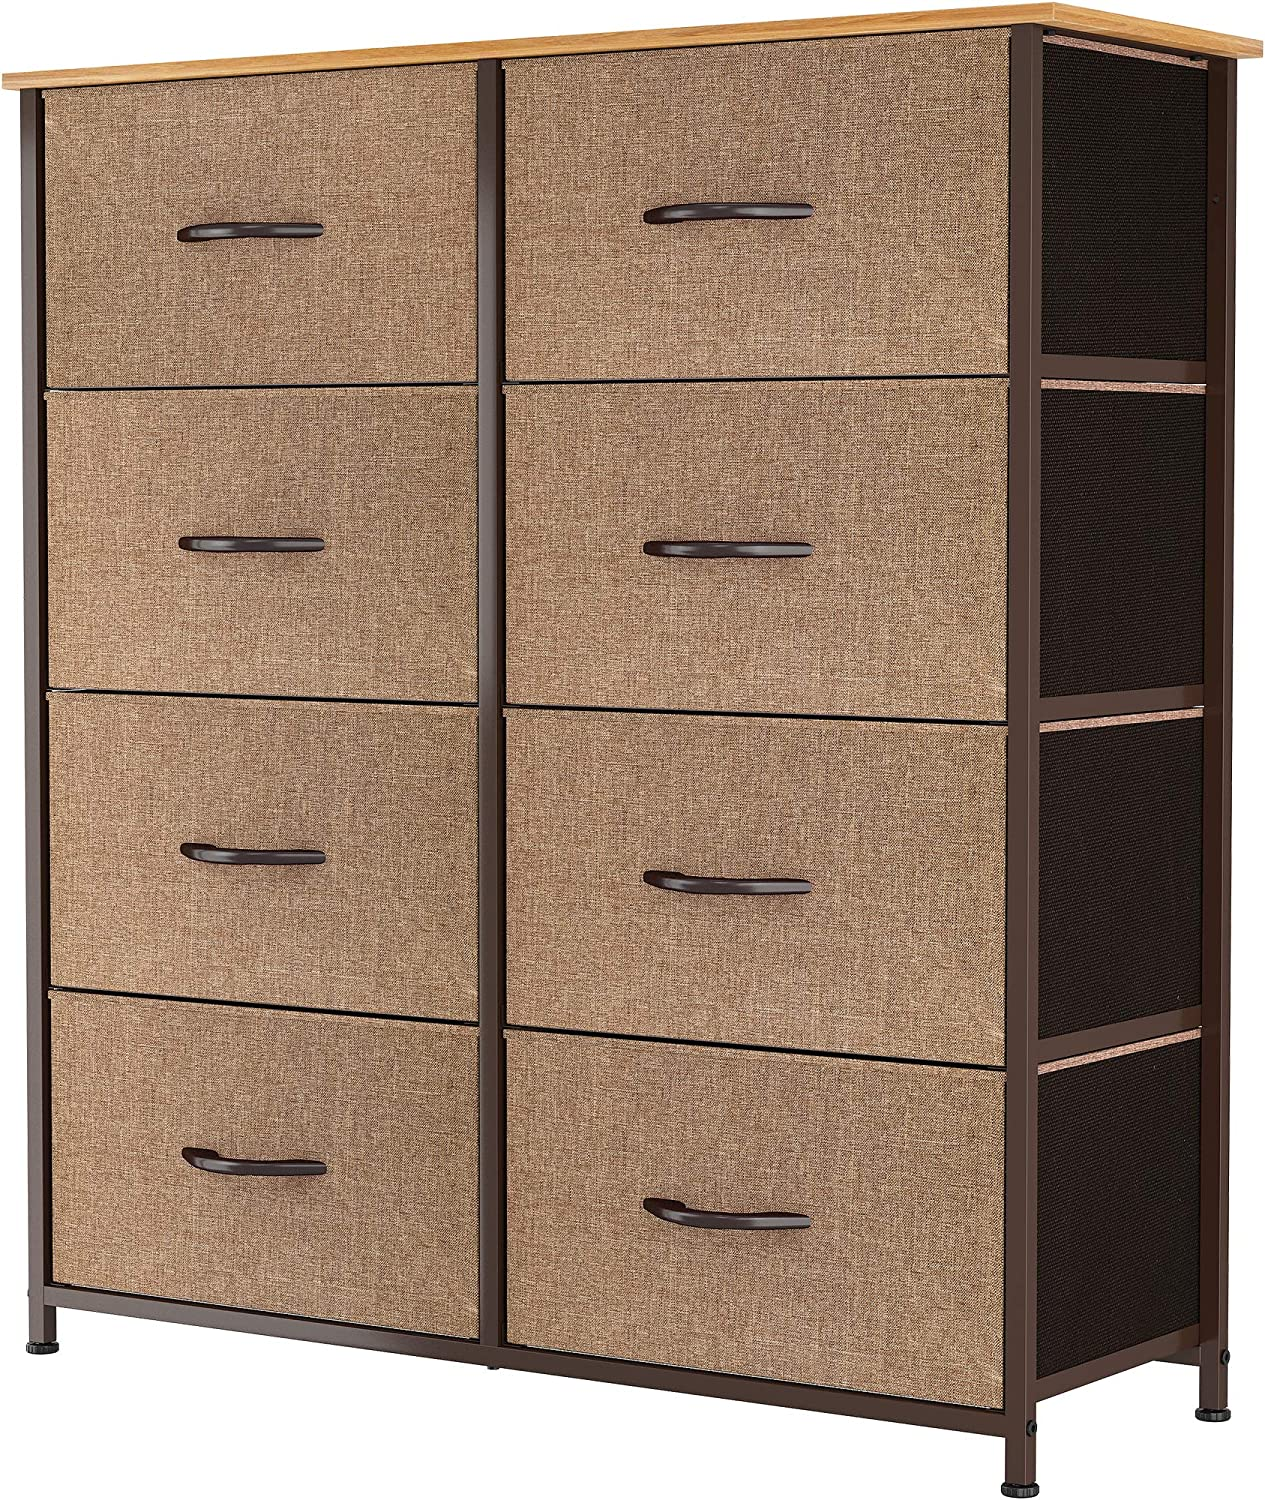 YITAHOME Vertical 5% OFF Dresser with Luxury goods 8 Drawers Furniture Draw Storage